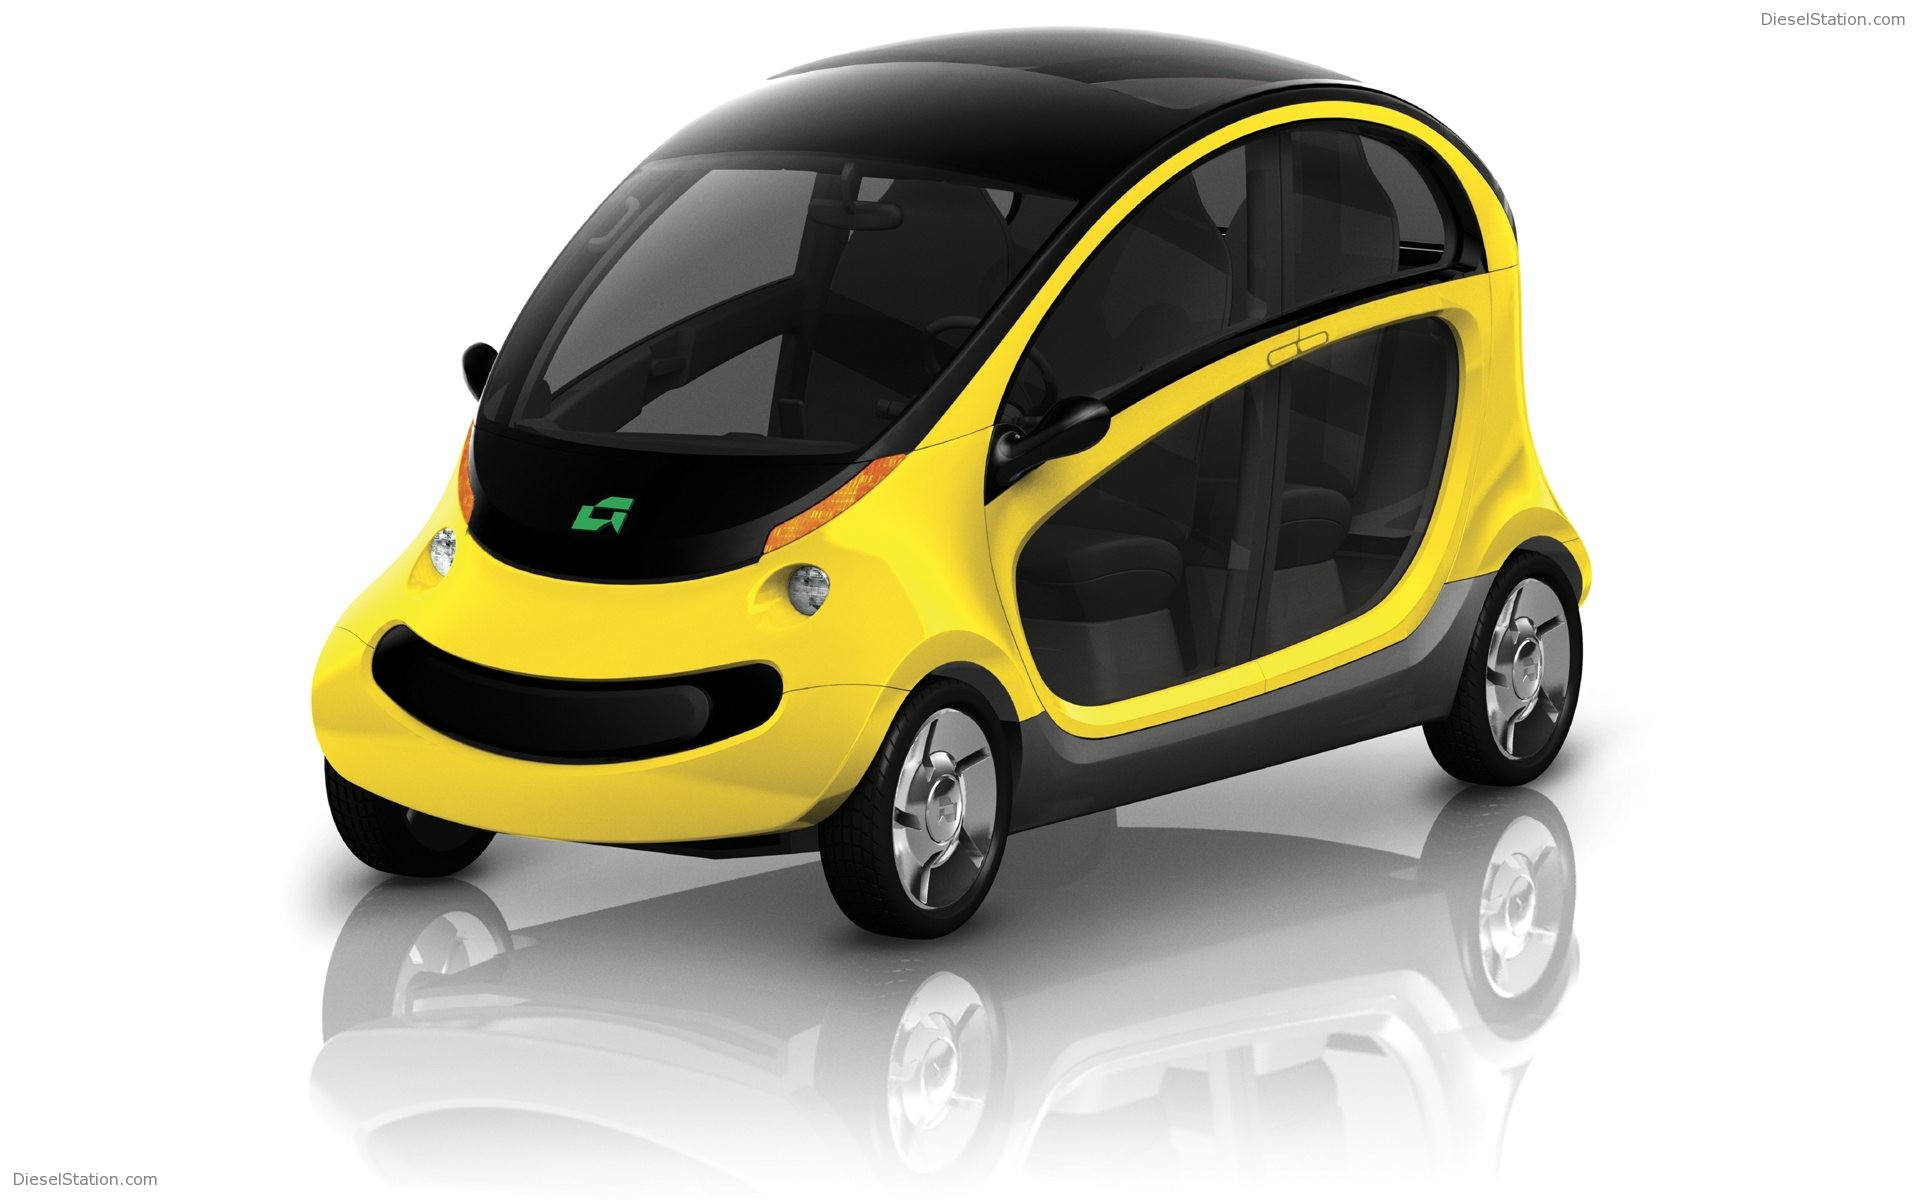 GEM introduces Peapod Electric Vehicle Widescreen Exotic Car 1920x1200